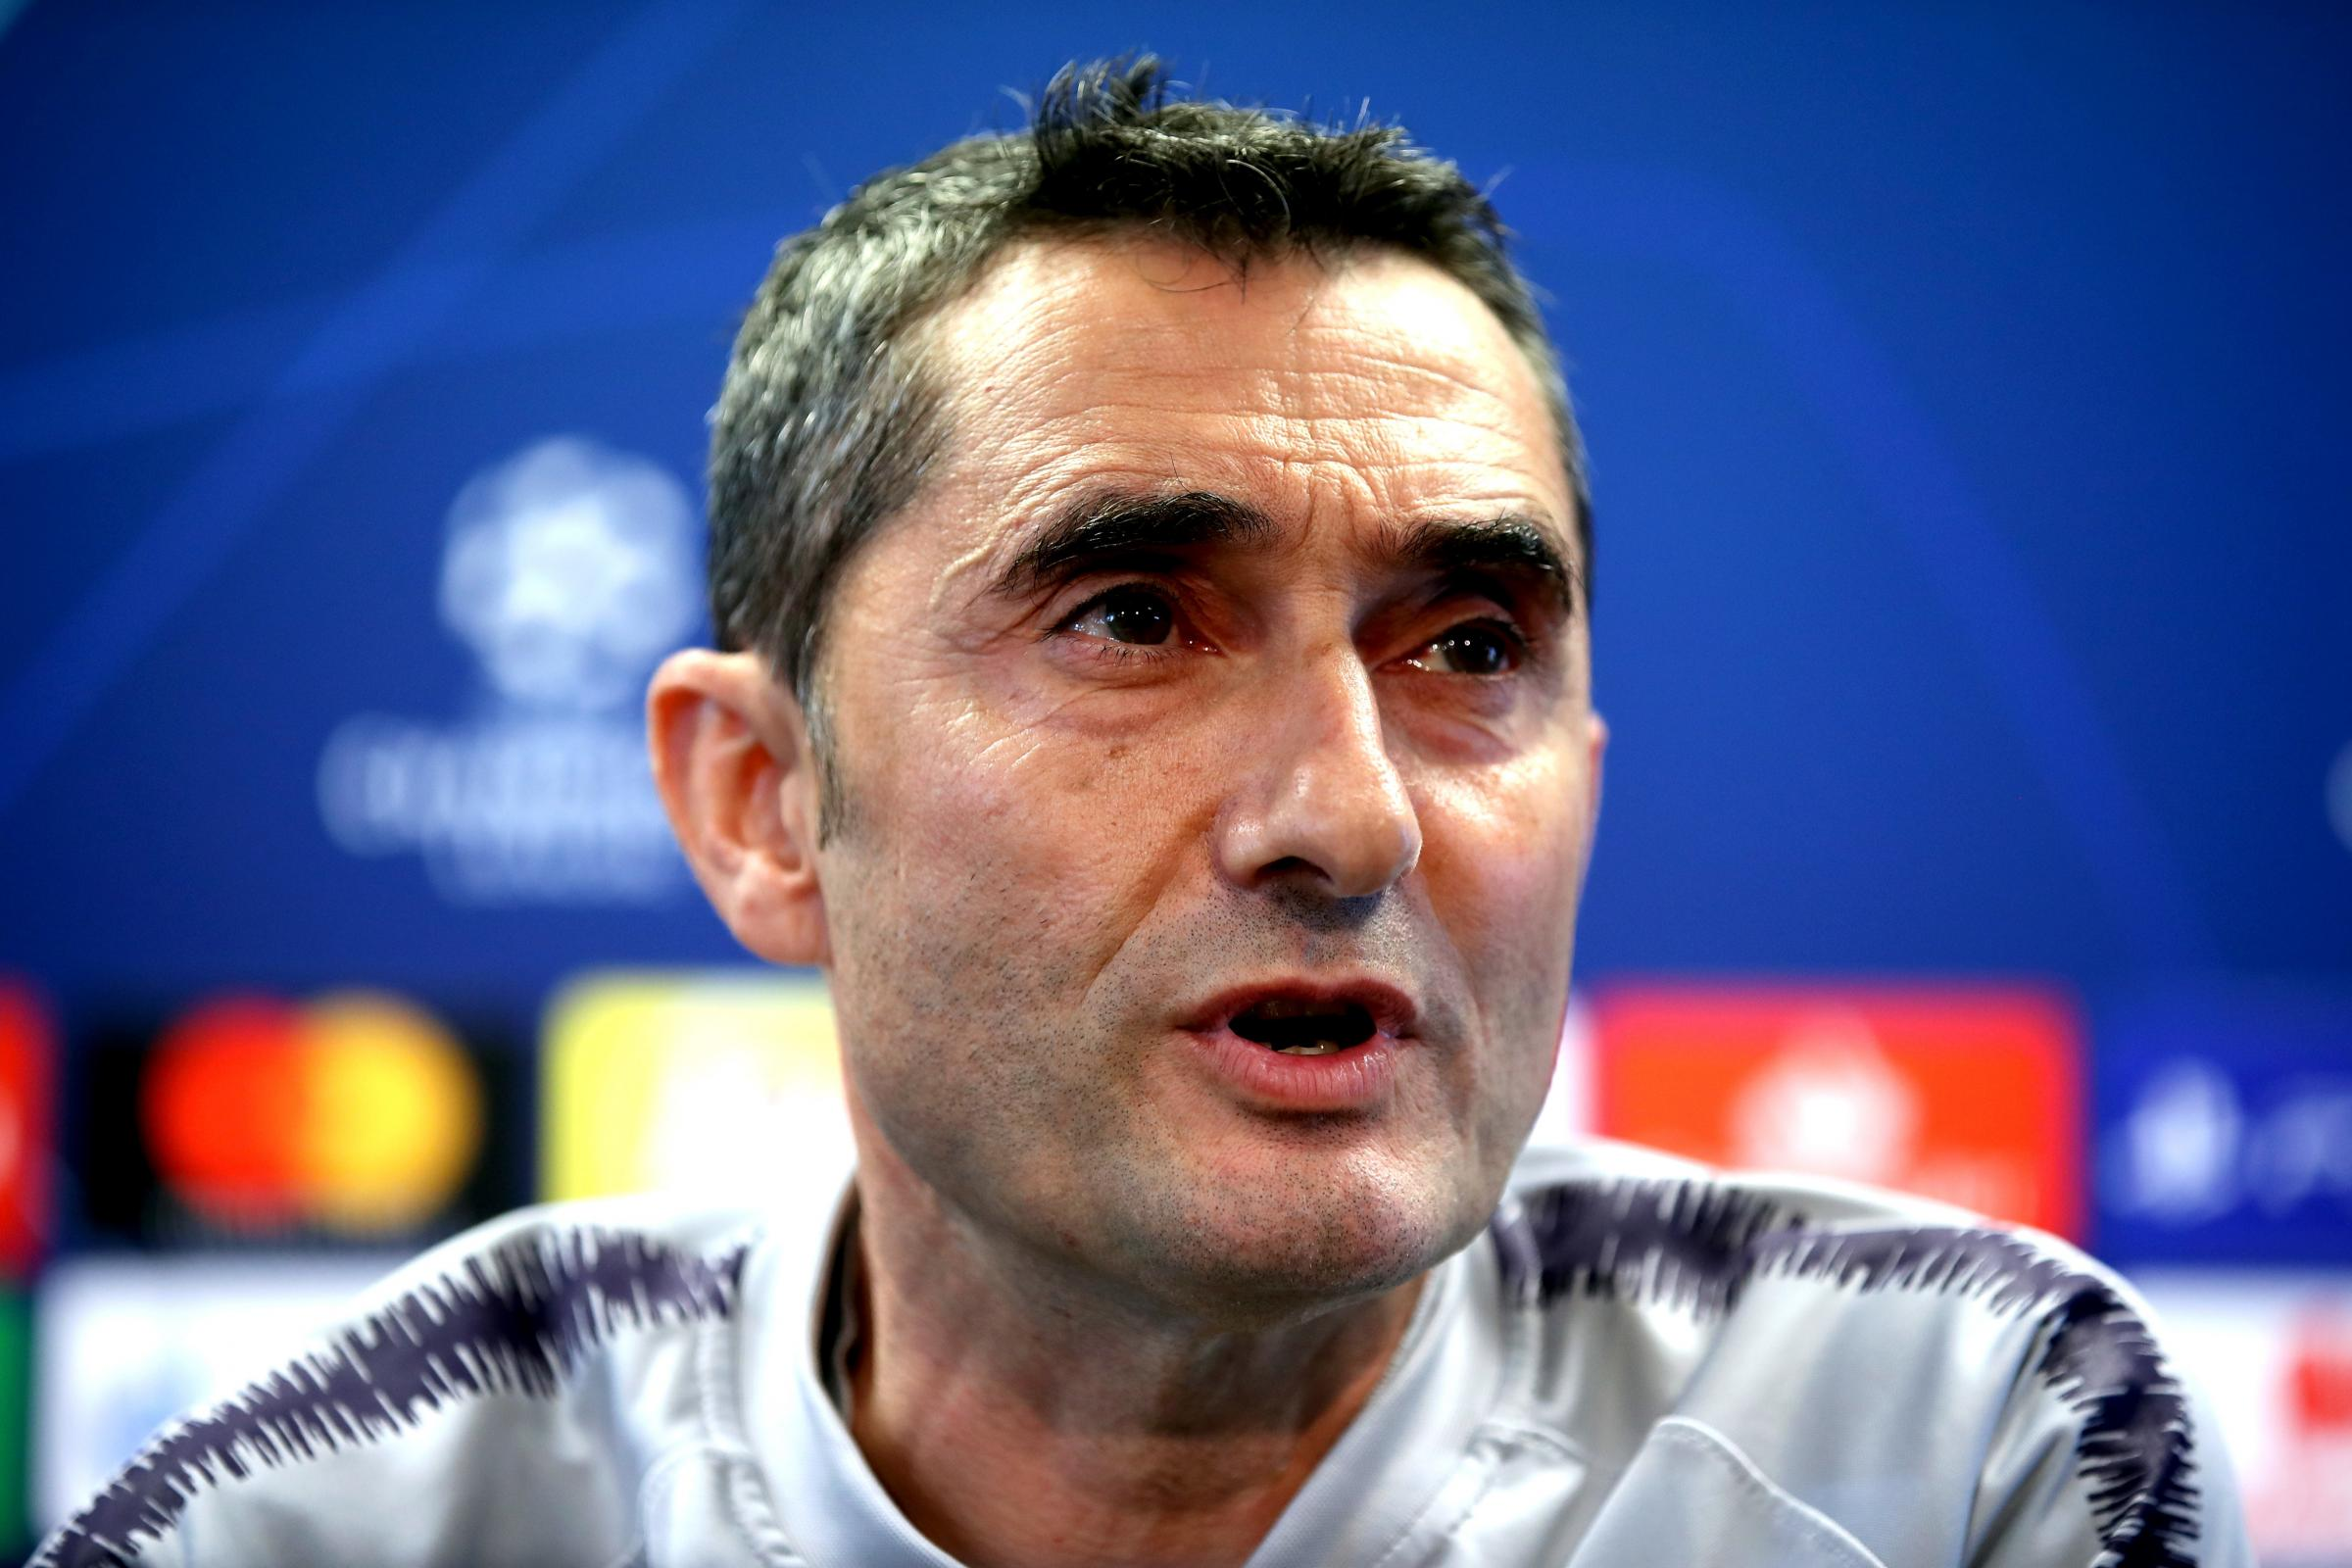 Ernesto Valverde led Barcelona to the LaLiga title